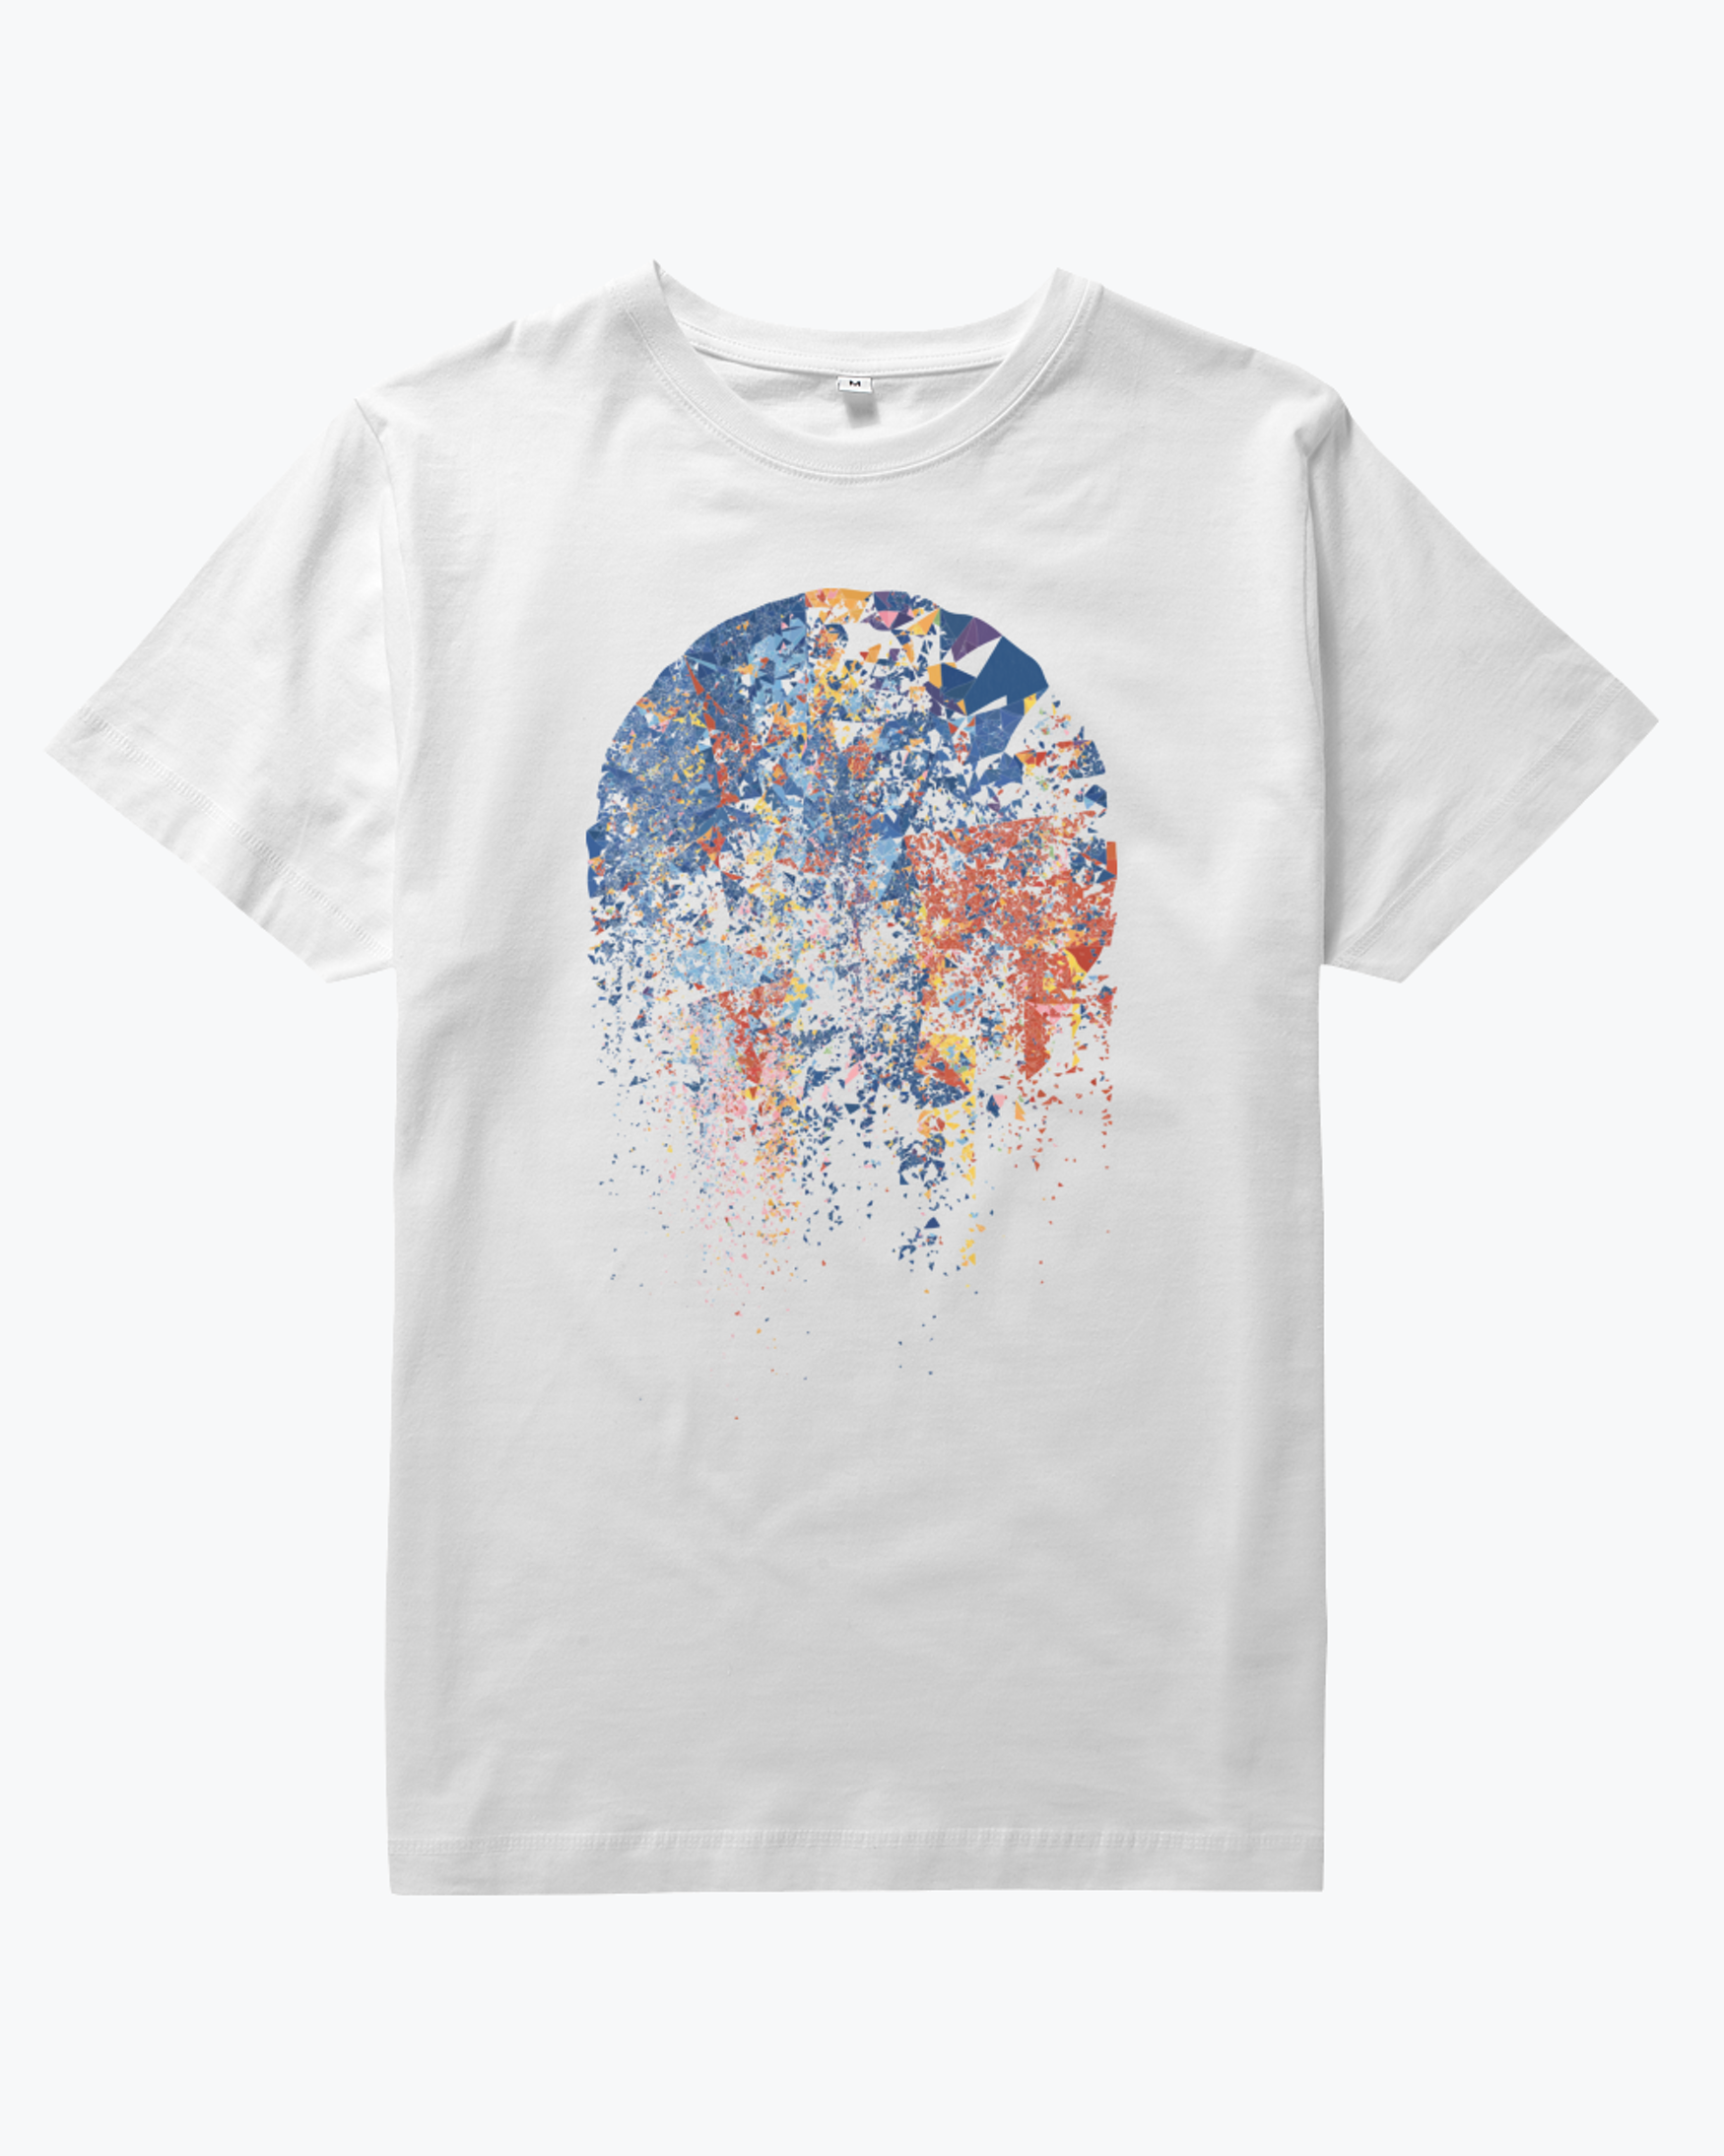 One Hundred Billion Sparks t-shirt (Size Medium) - Mesh